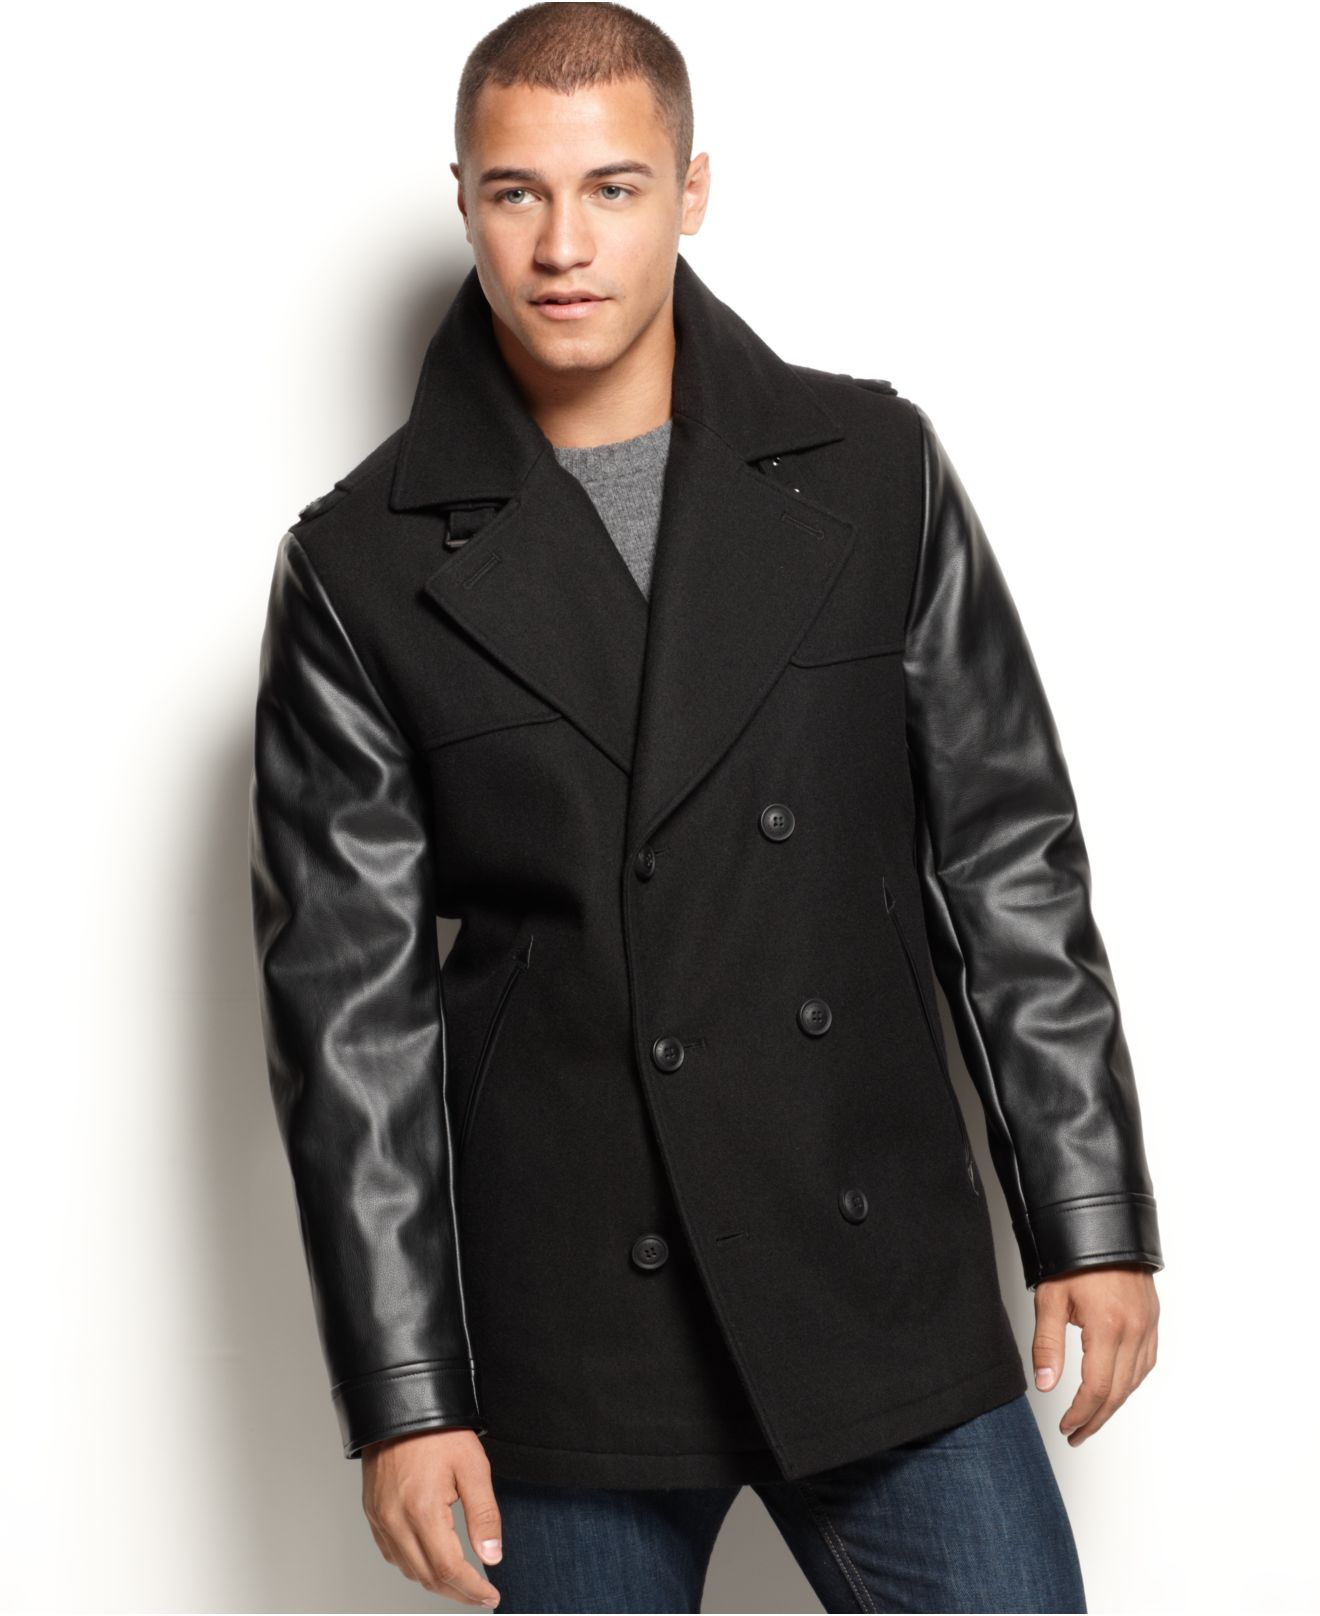 Faux Leather Pea Coat - Tradingbasis